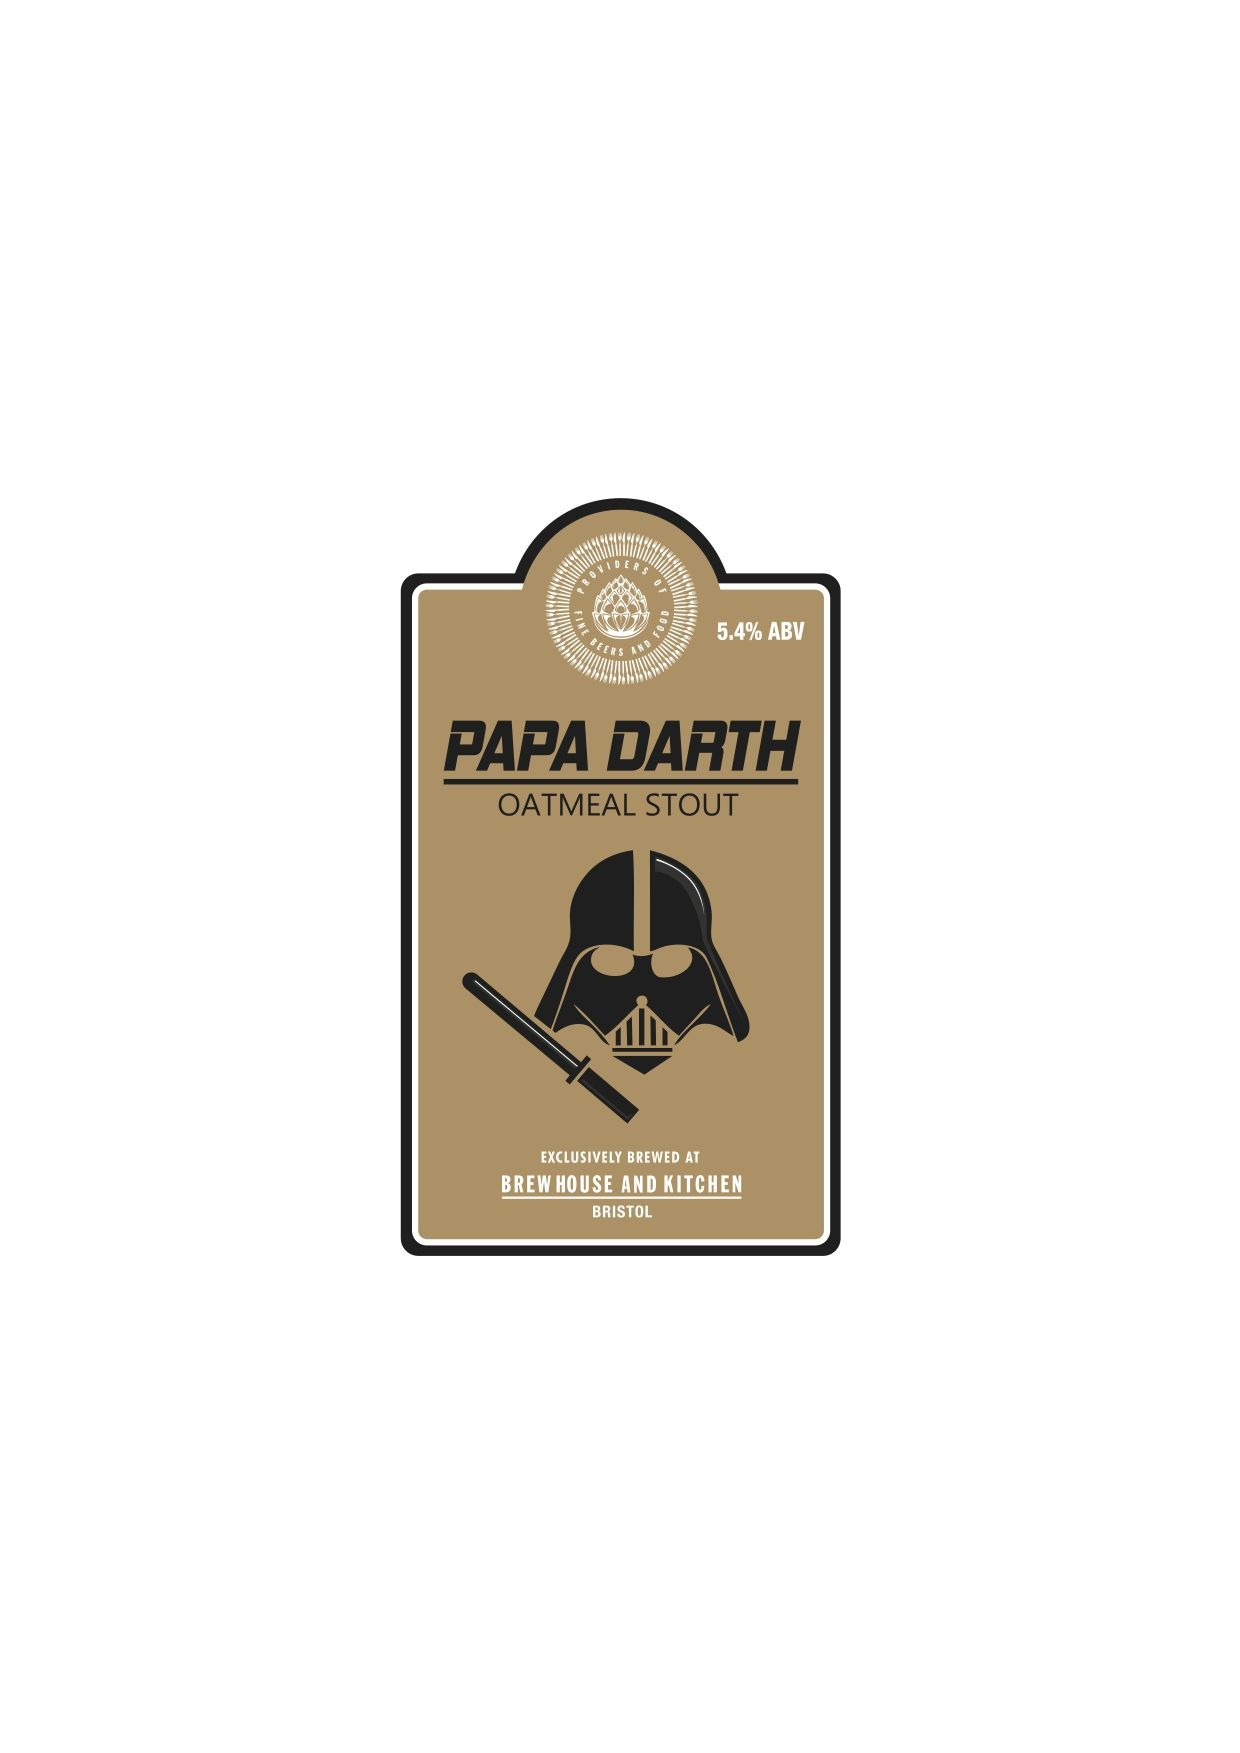 Papa Darth – Stouts & Porters - Oatmeal Stout 5.4% Papa Darth – our ...